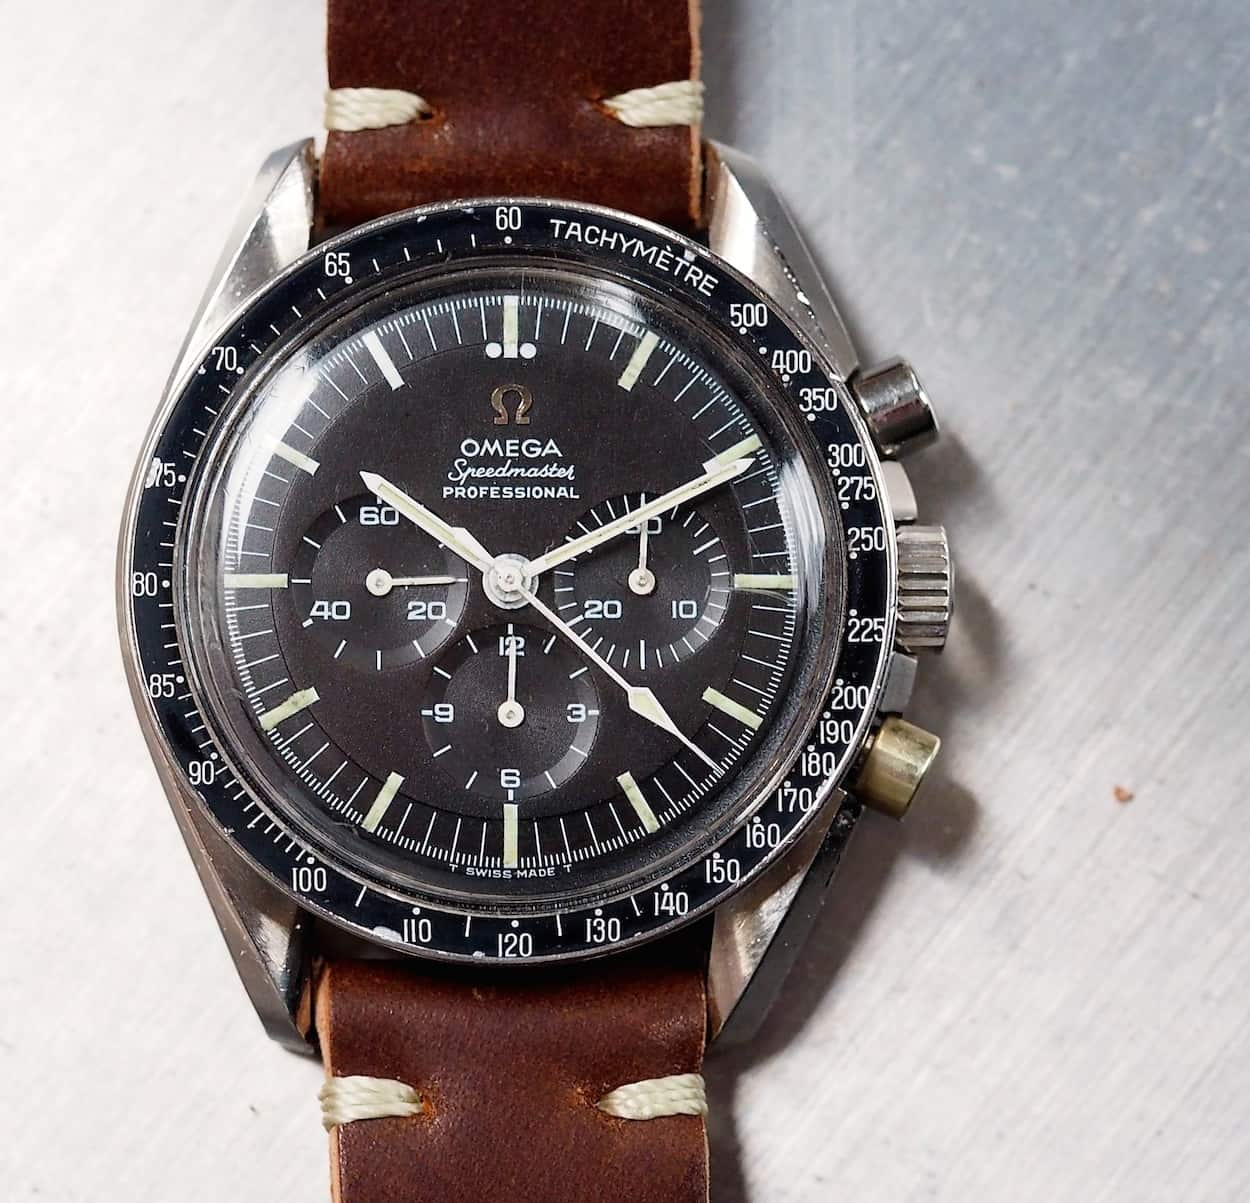 Another recent pick-up, a well-used but solid Omega Speedmaster 145.012.  The design is simply iconic.